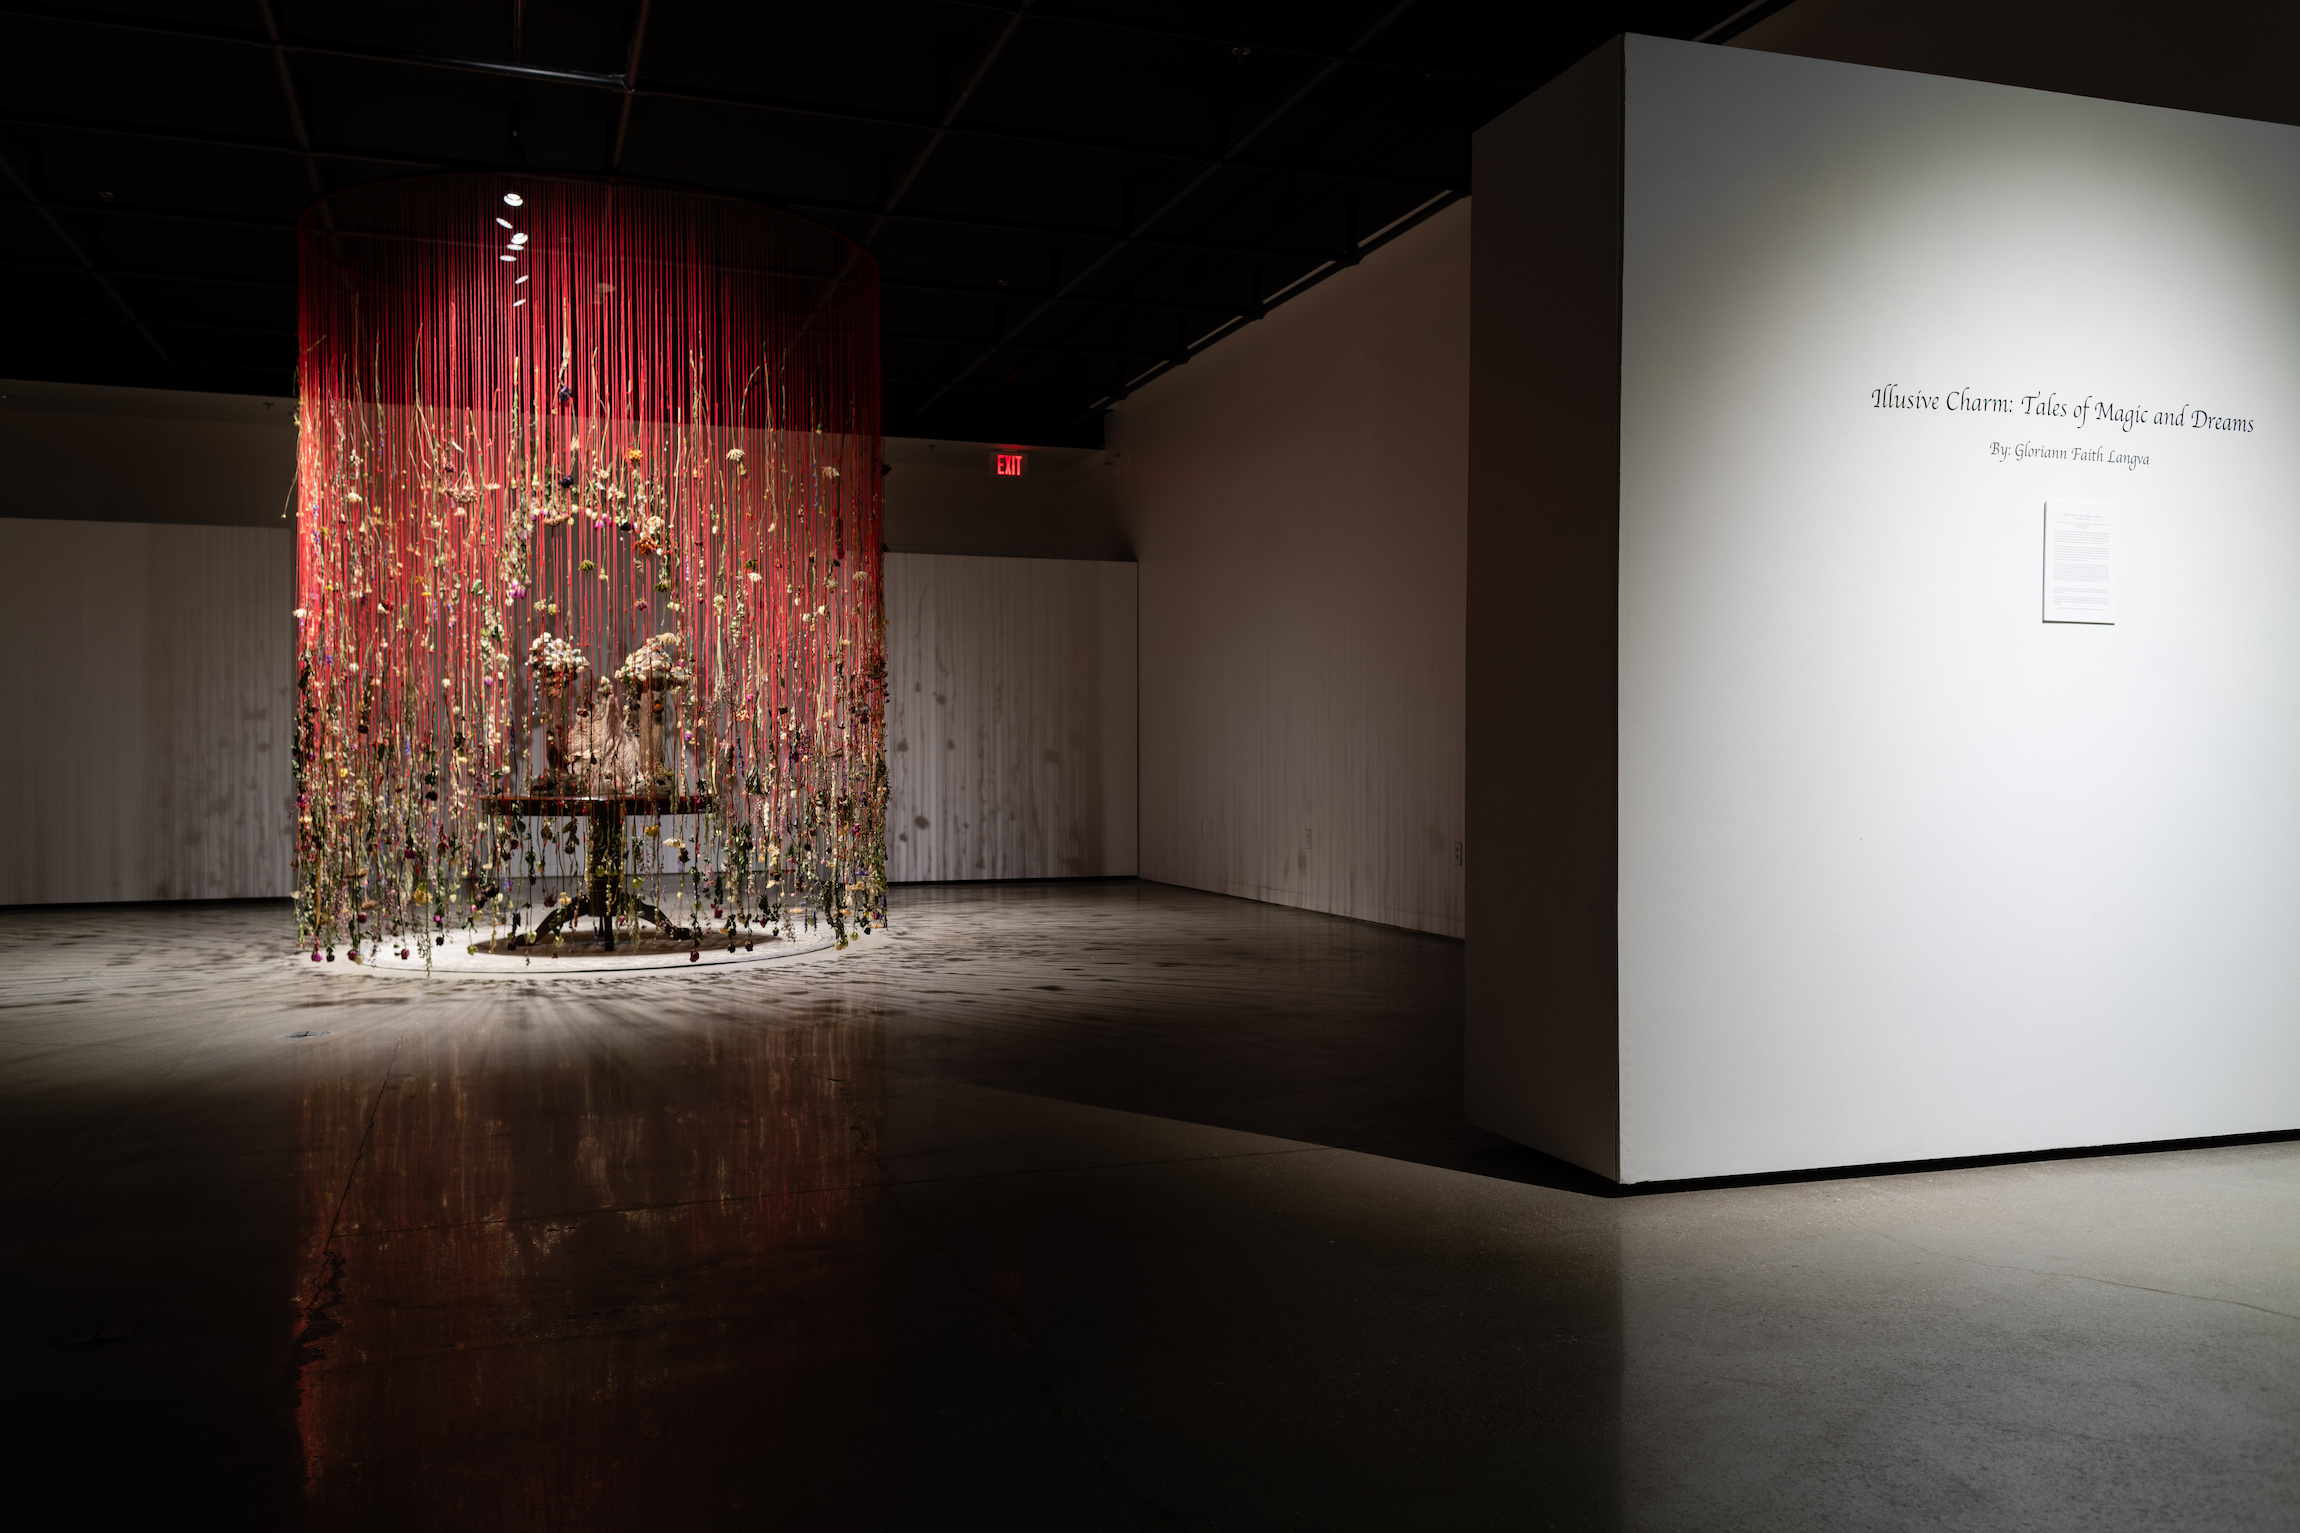 Installation view of Gloriann Langva's Master of Fine Arts exhibition Illusive Charm: Tales of Magic and Dreams at the Art Lofts Gallery, University of Wisconsin-Madison. Photography by Kyle Herrera.